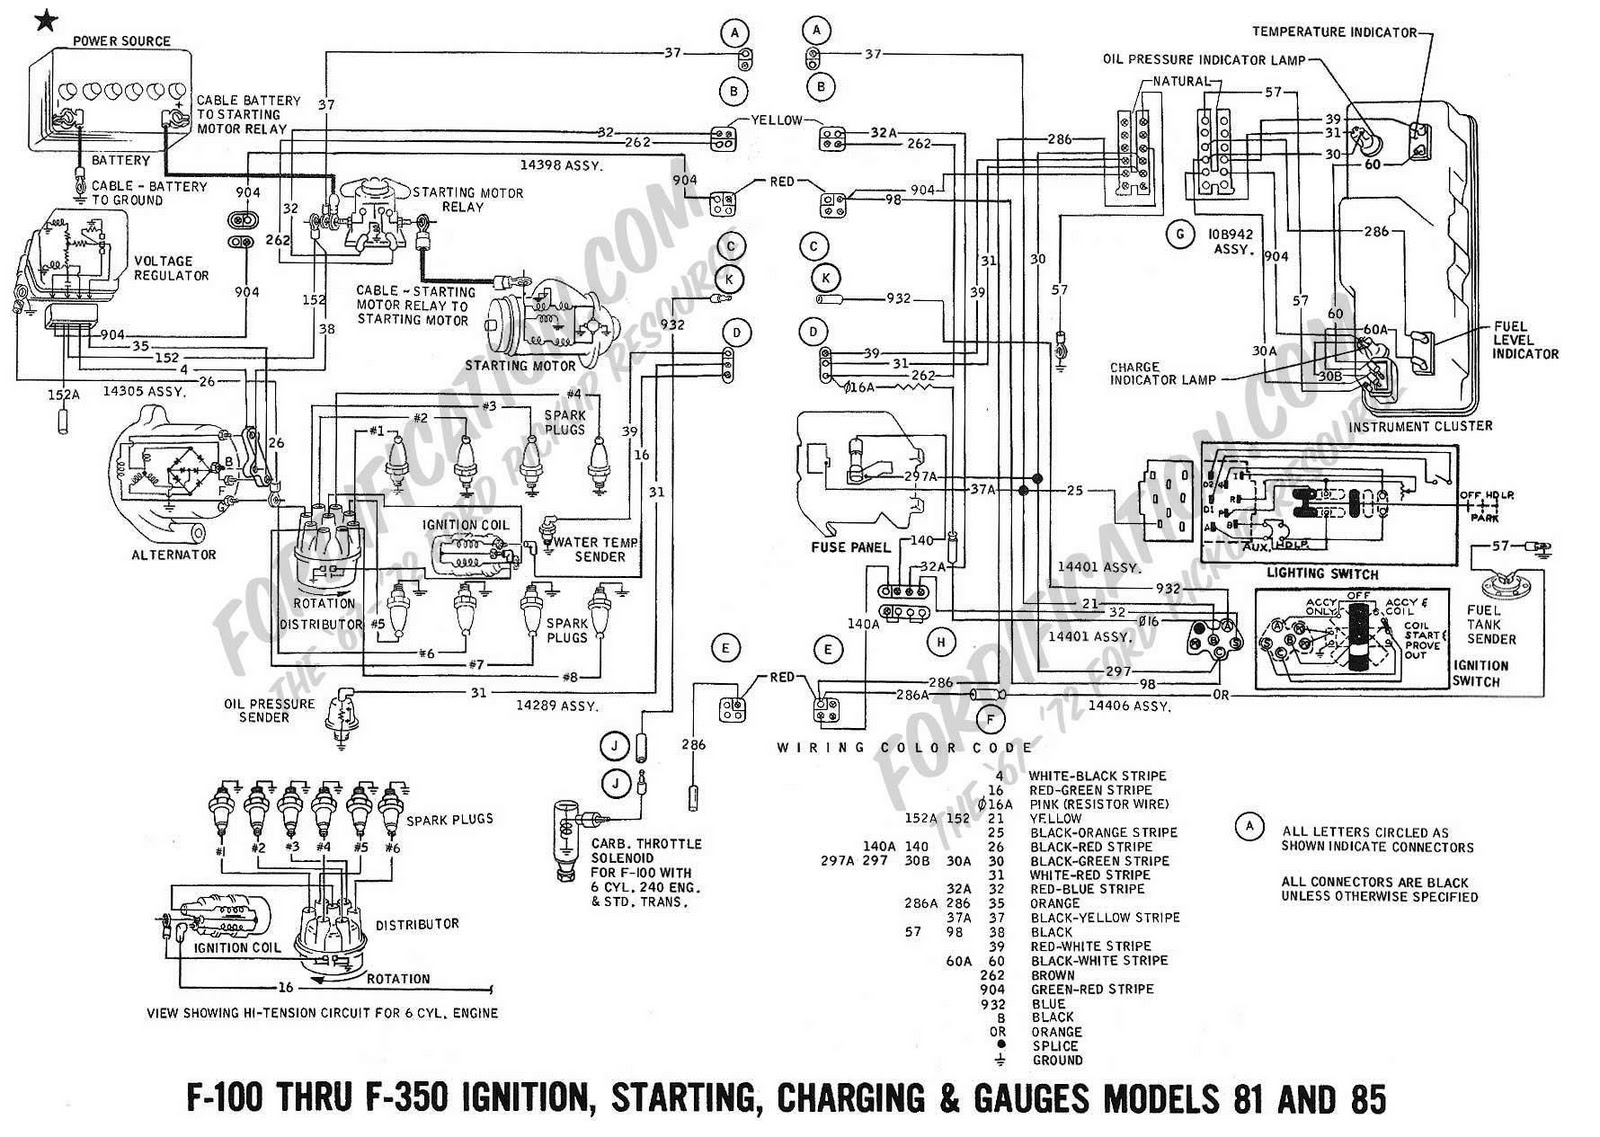 1970 thunderbird instrument cluster diagram wiring schematic new 1962 thunderbird wiring schematics western joystick wire diagram 1970 chevy truck wiring diagram 1970 cutlass wiring diagram 1970 torino wiring diagram on sciox Images